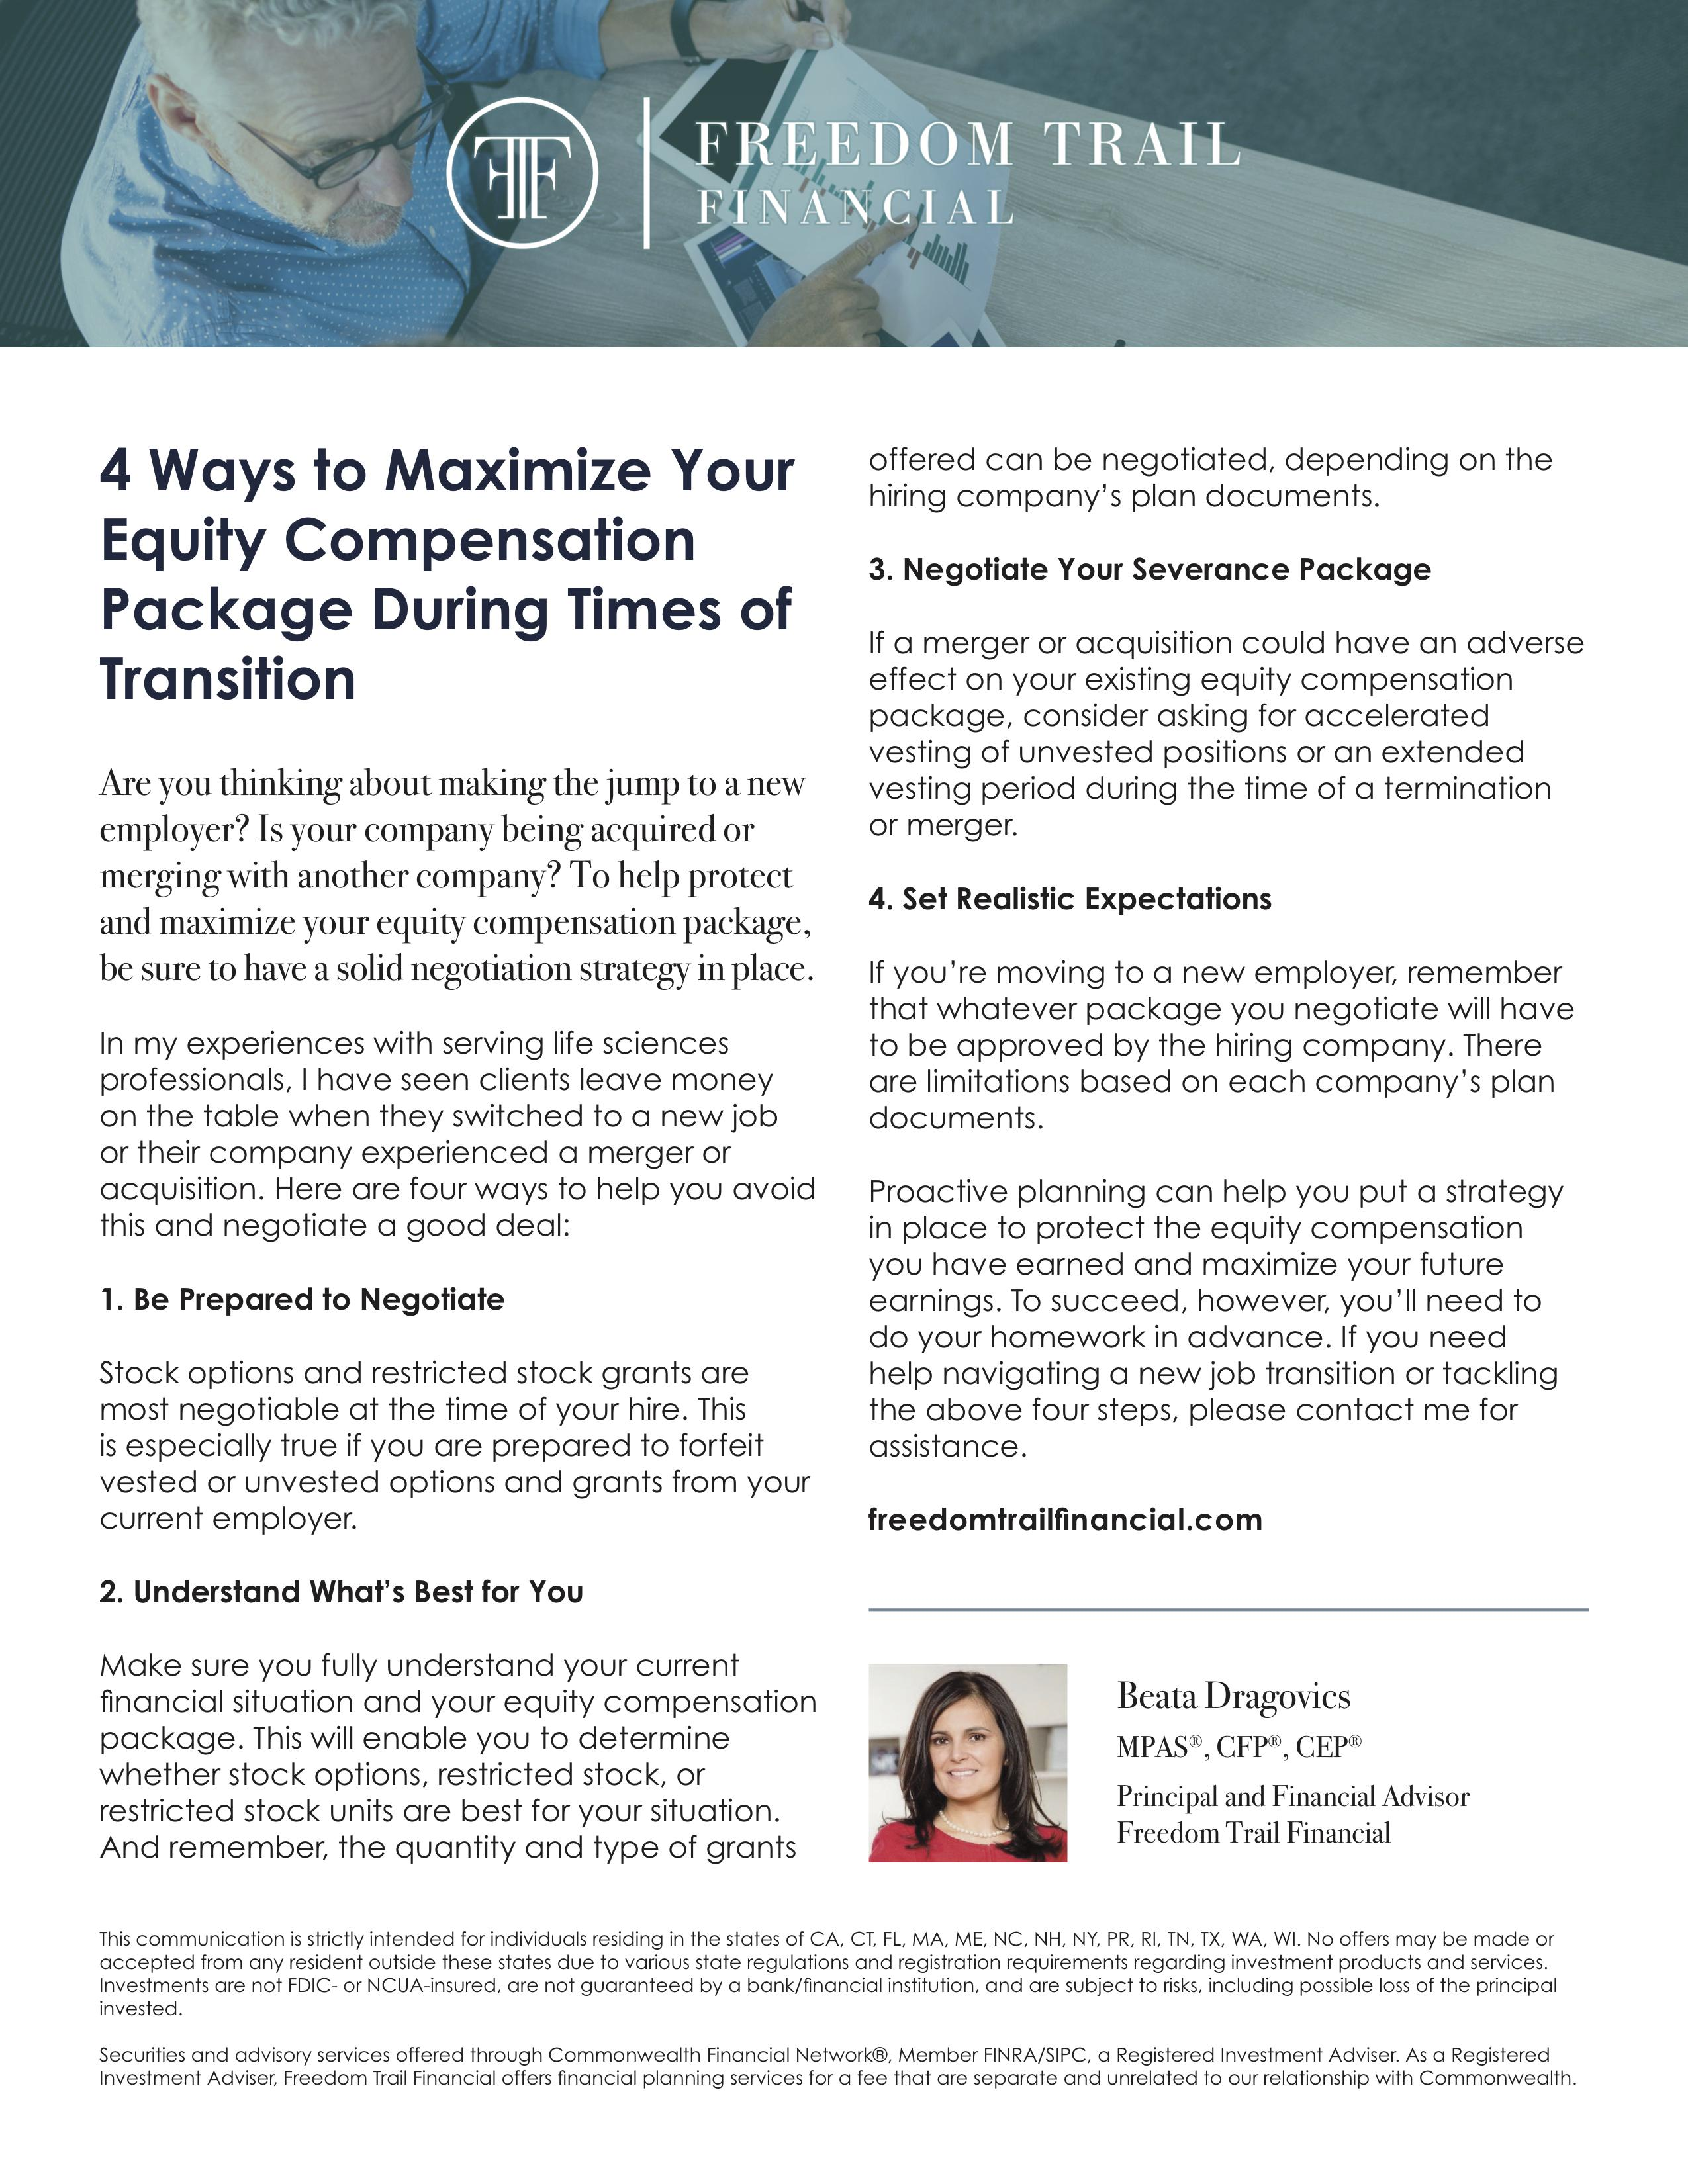 Freedom Trail Financial - Maximize Equity Compensation